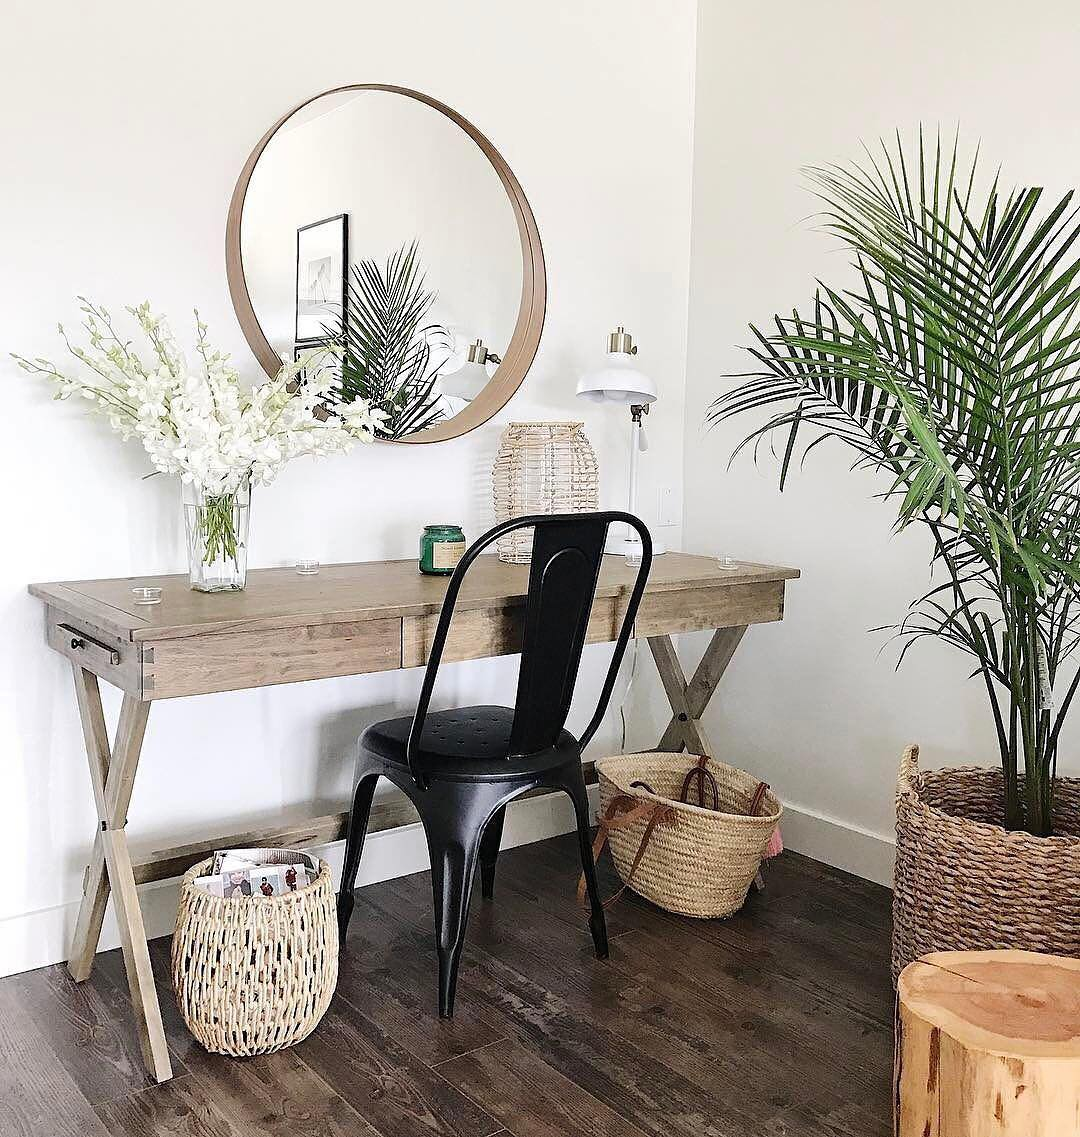 Top Modern Bohemian Decor Picks On Sale At World Market Right Now!